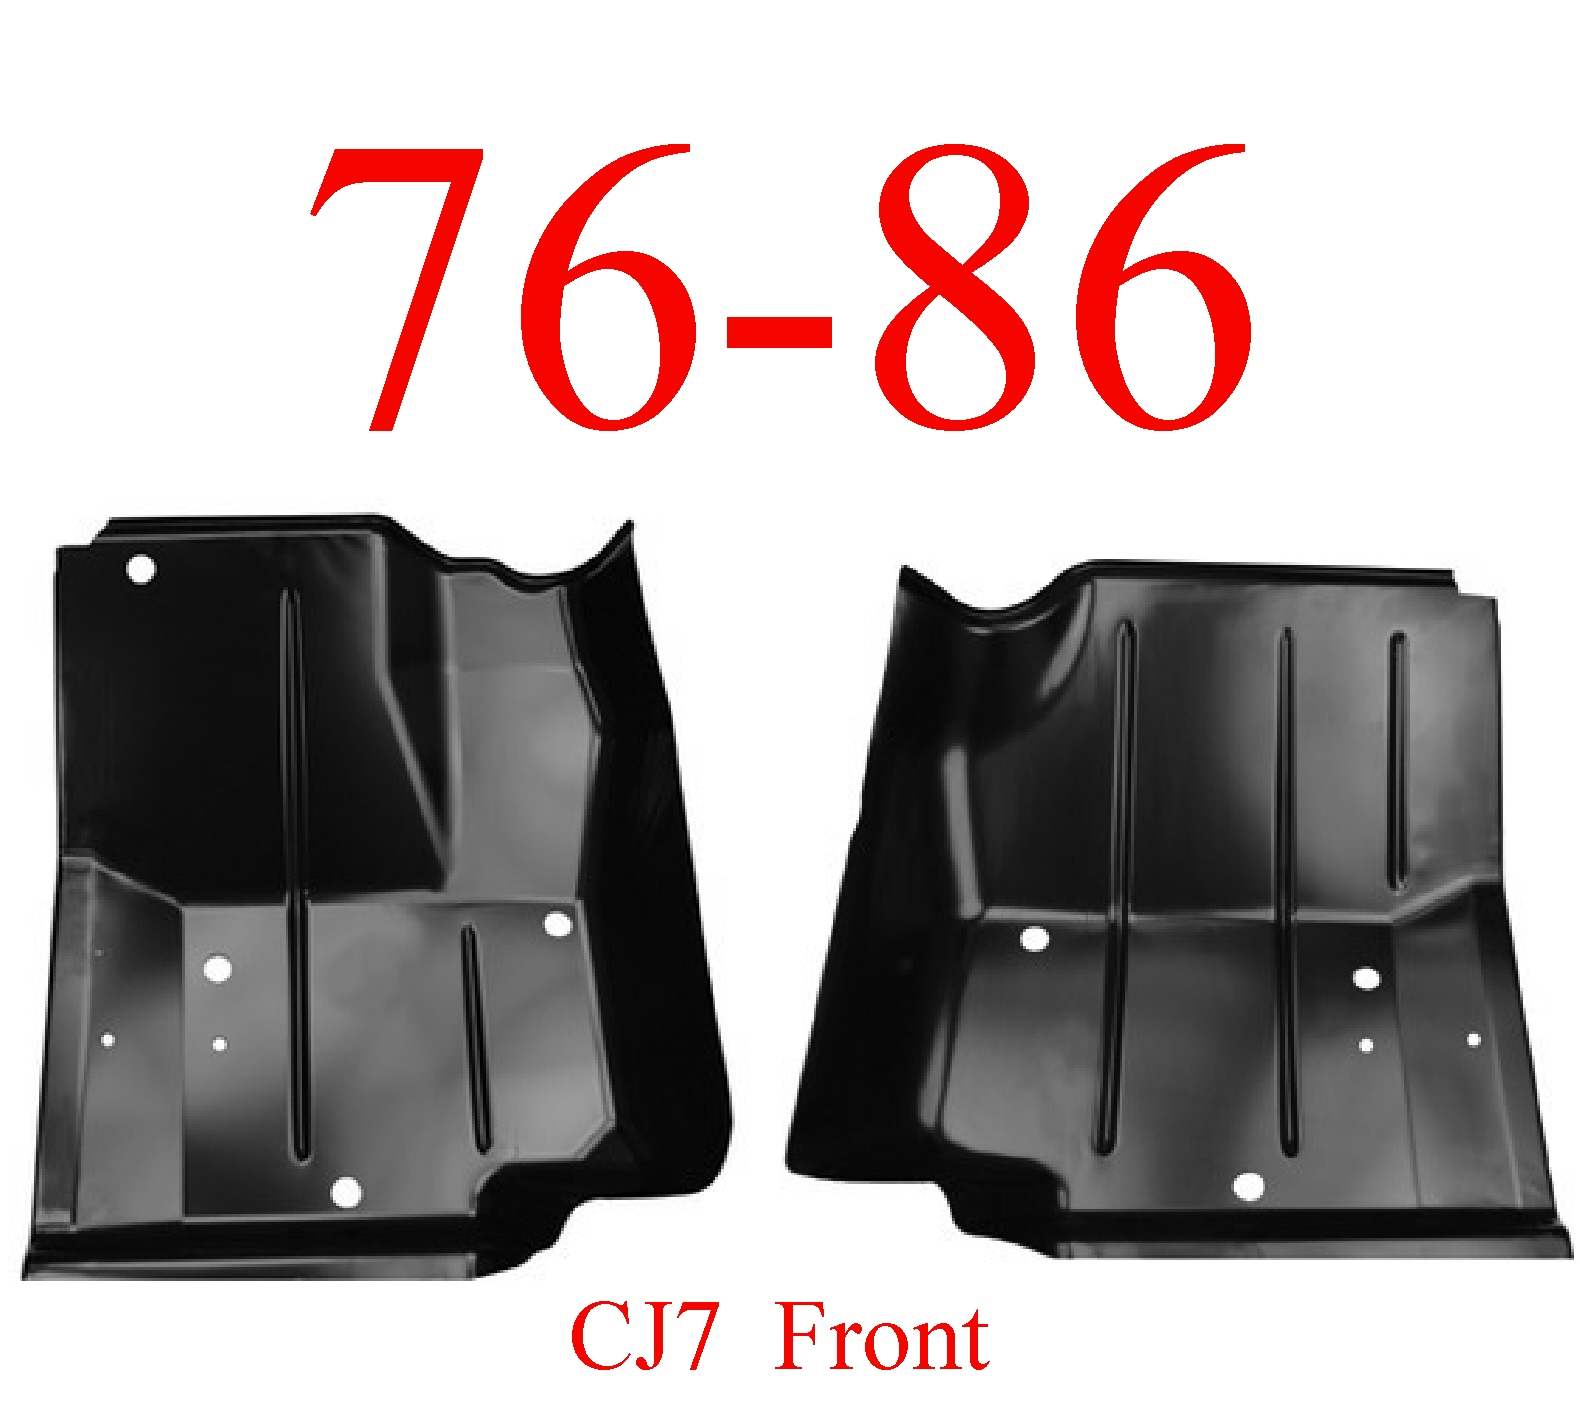 76-86 Jeep CJ7 Left & Right Front Floor Pan Set